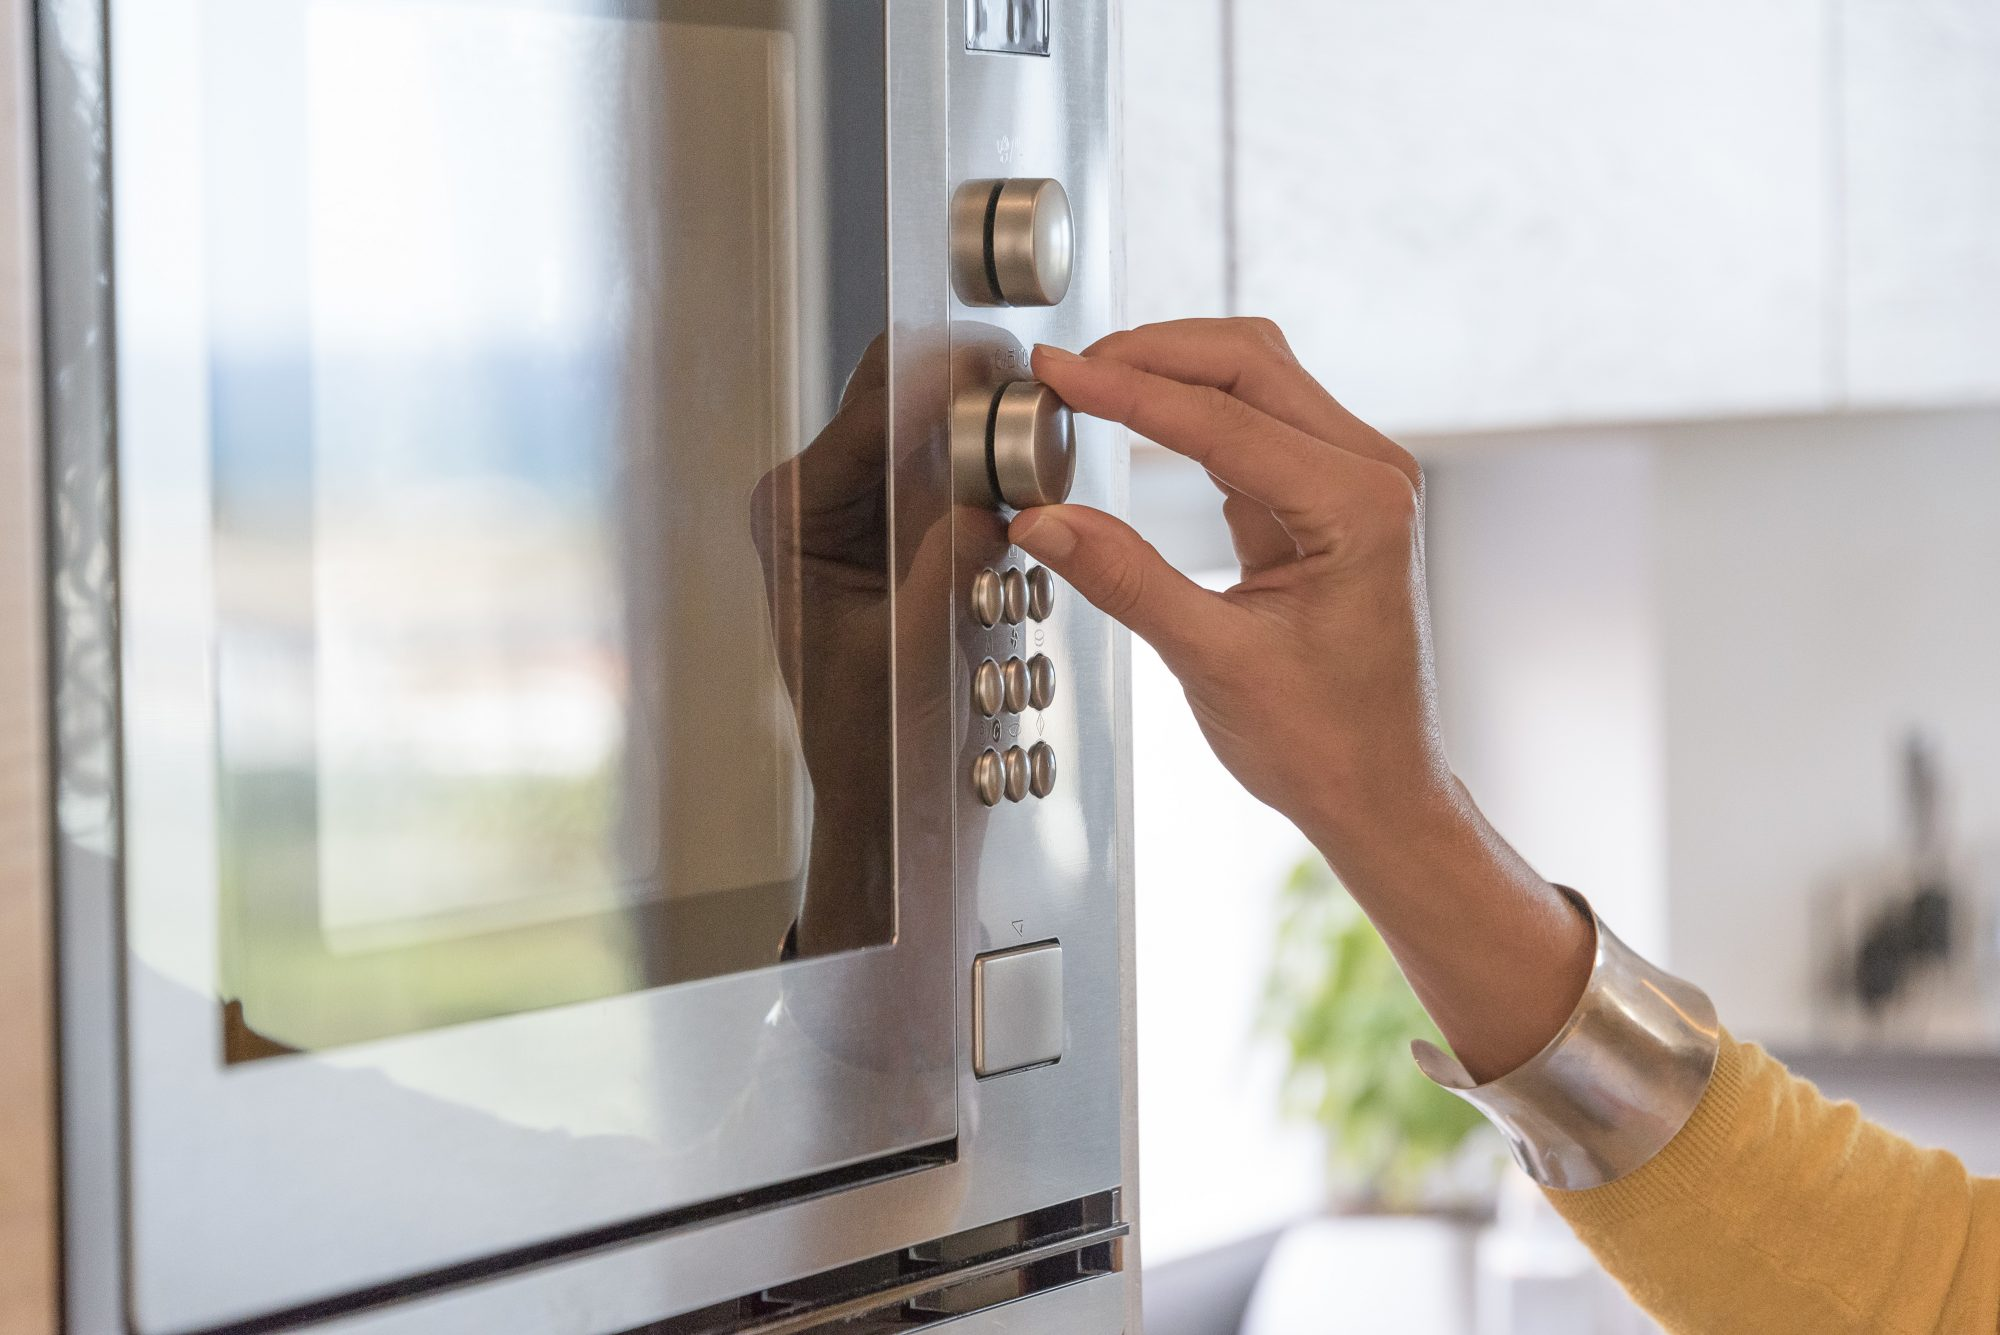 Woman Pressing Buttons on the Microwave